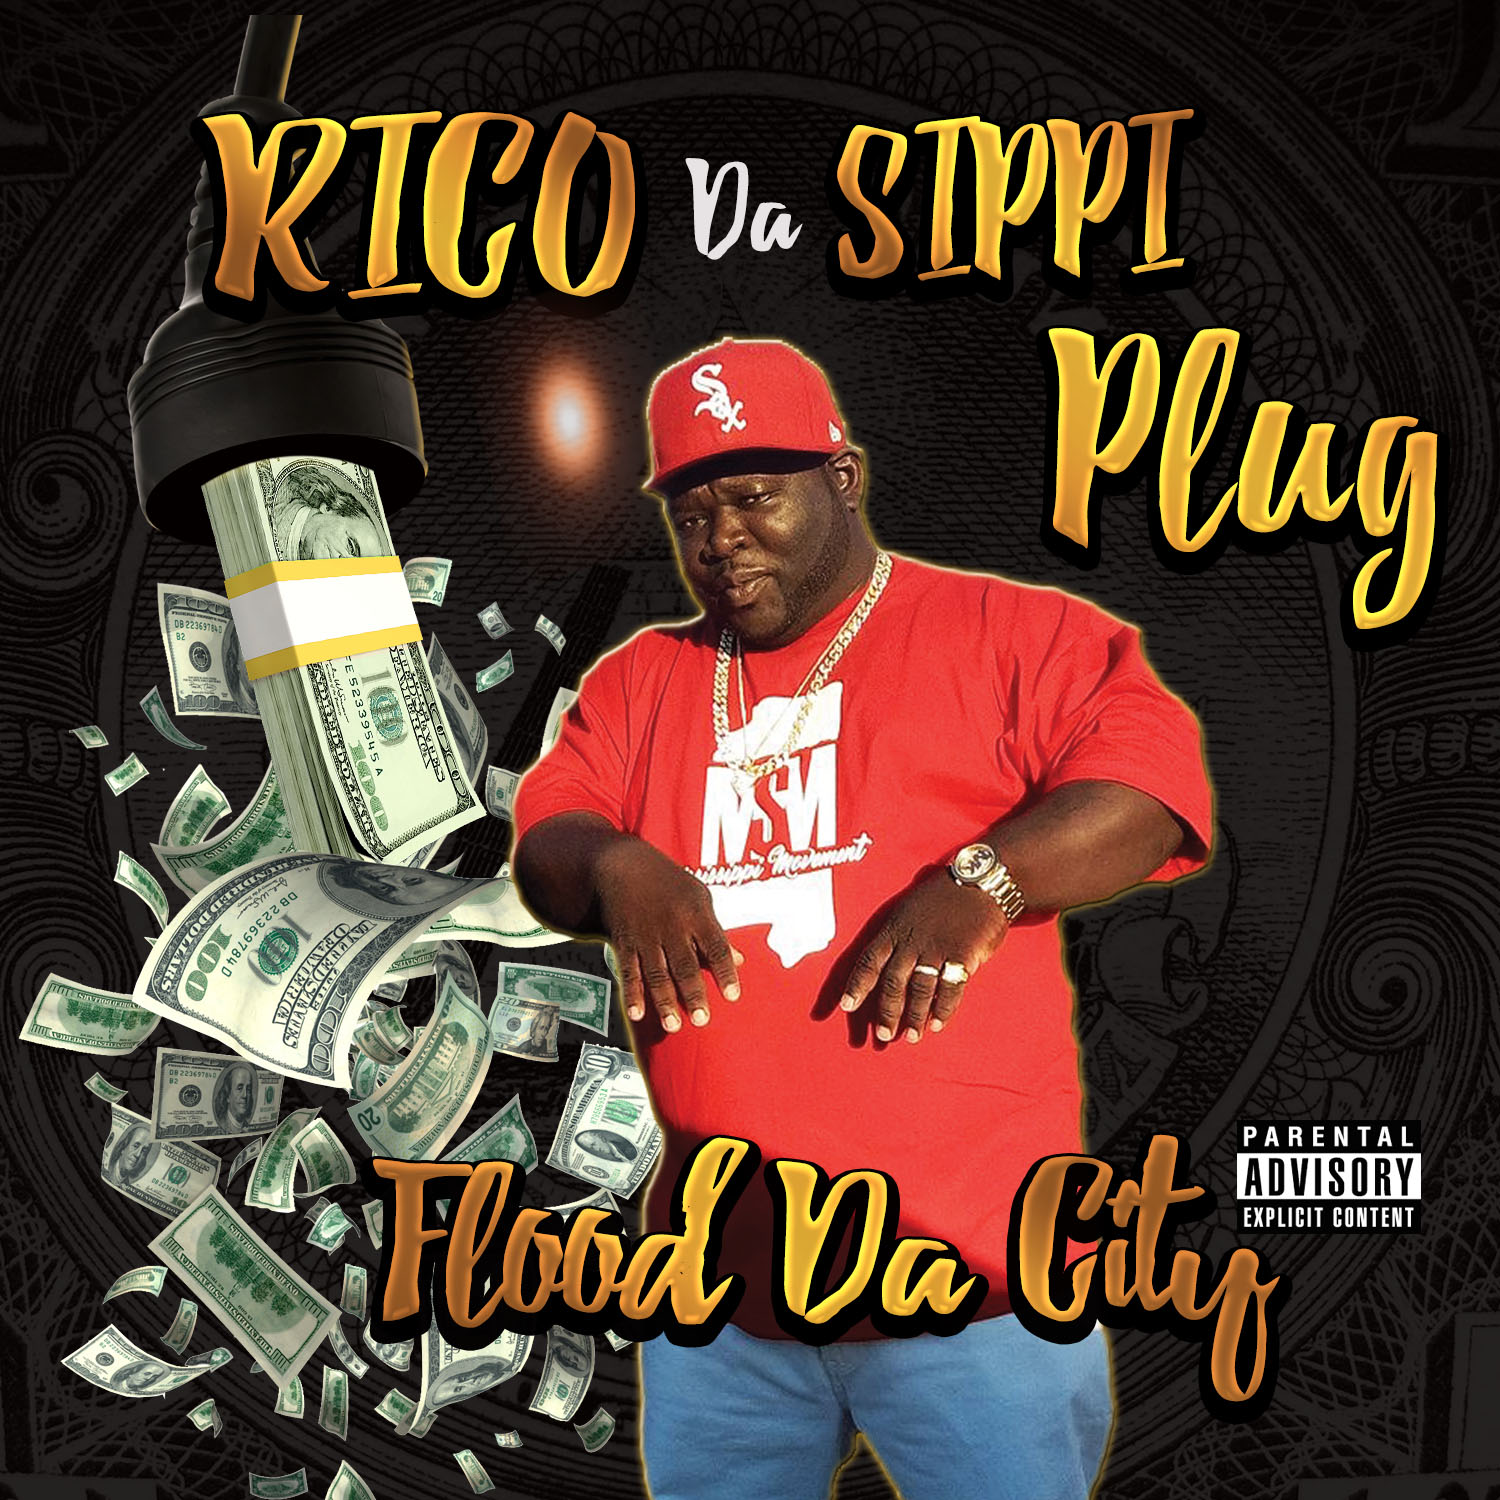 #JuJUSwagShawty, JuJu Swag Shawty, #RicoDaSippiPlug, Rico Da Sippi Plug, #FloodTheCity, Flood The City, #PureTruthLLC, Pure Truth LLC, #PureTruth, Pure Truth, #PureTruthDjs, Pure Truth Djs, #music, music, #news, news, #media, media